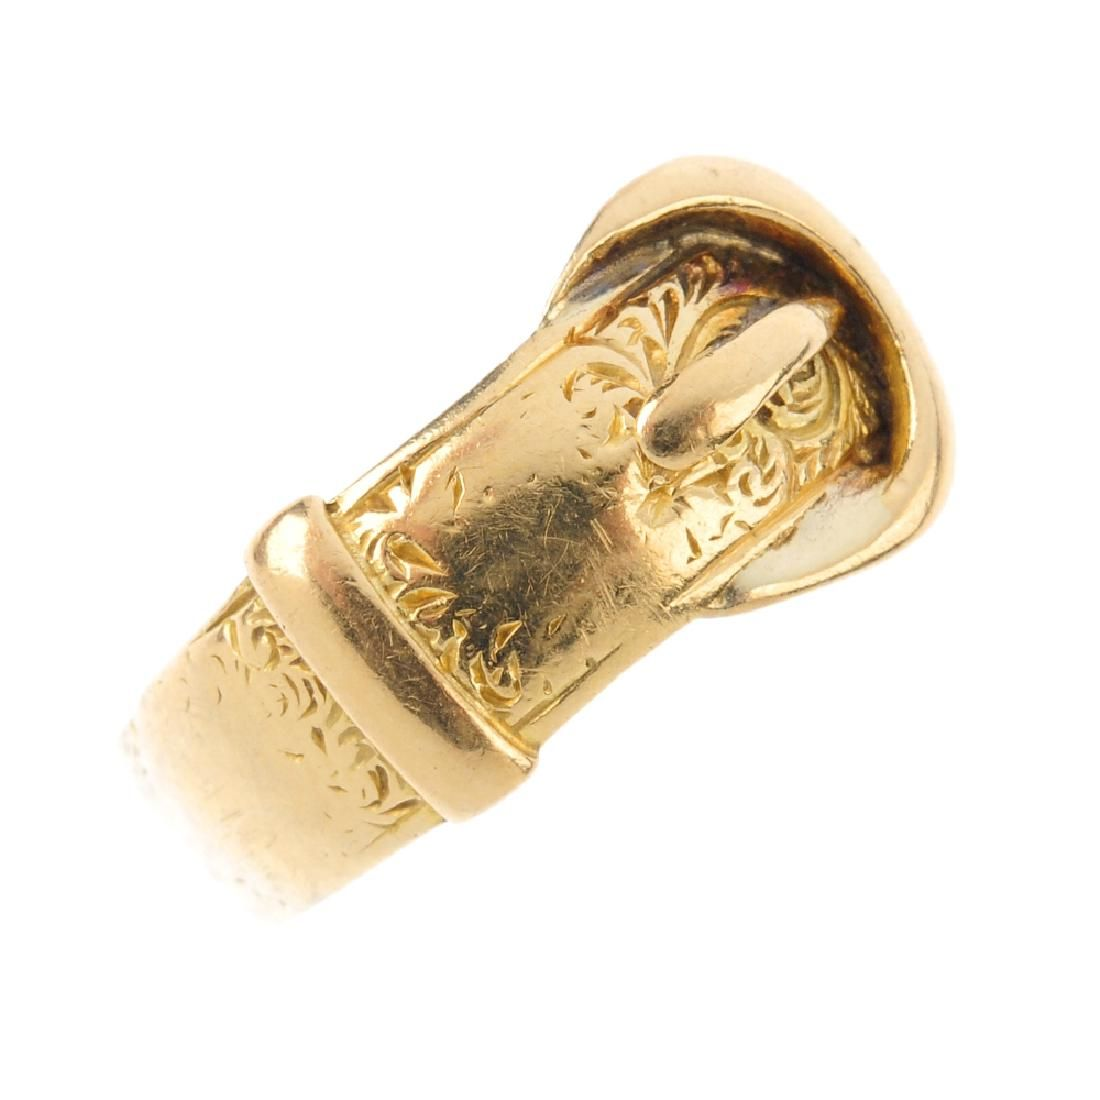 A late Victorian 18ct gold buckle ring. The front